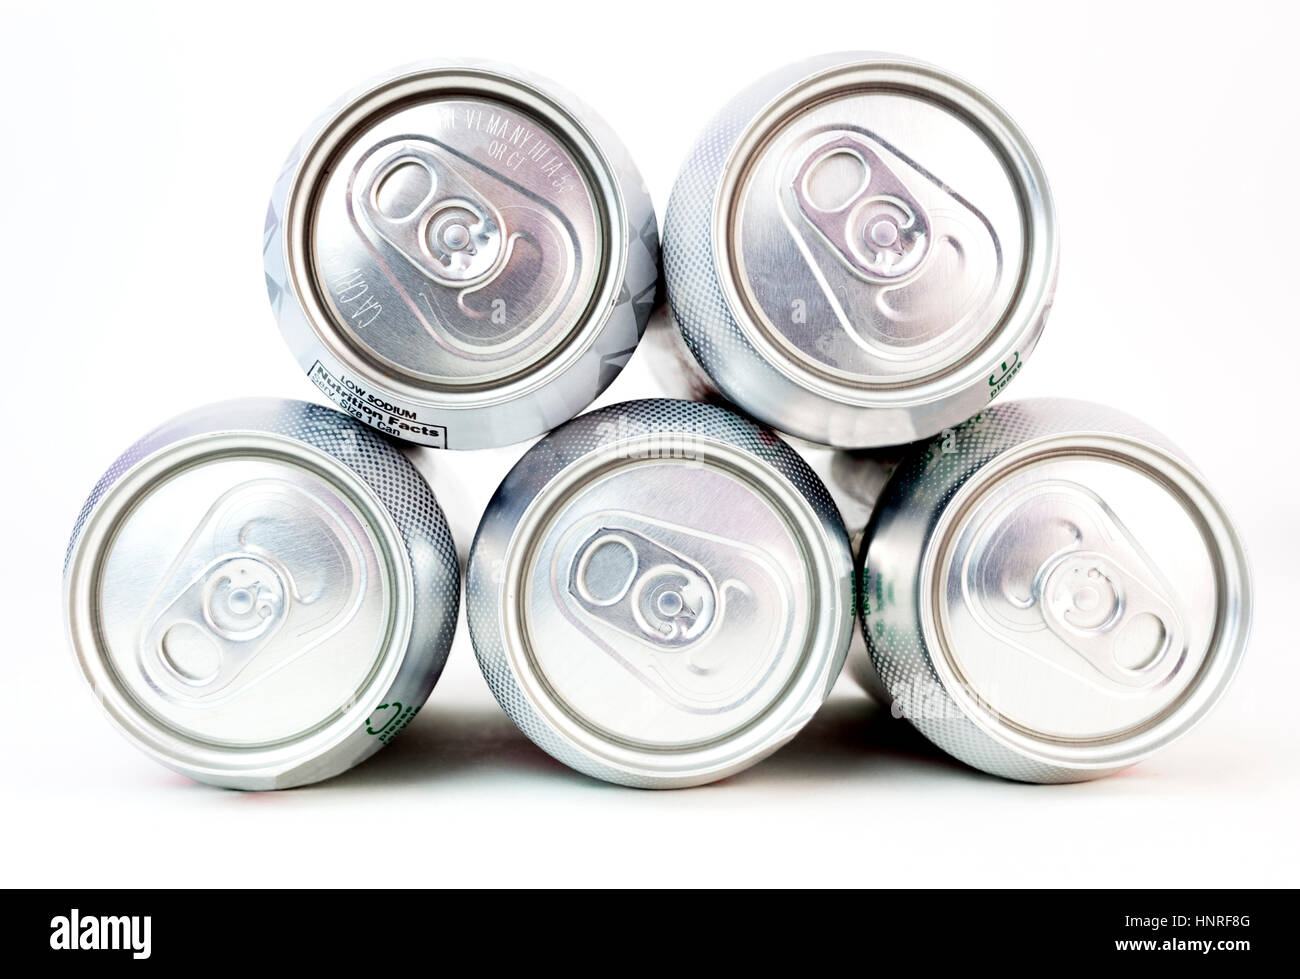 Front view of tops of aluminum beverage cans with pull tab tops. - Stock Image